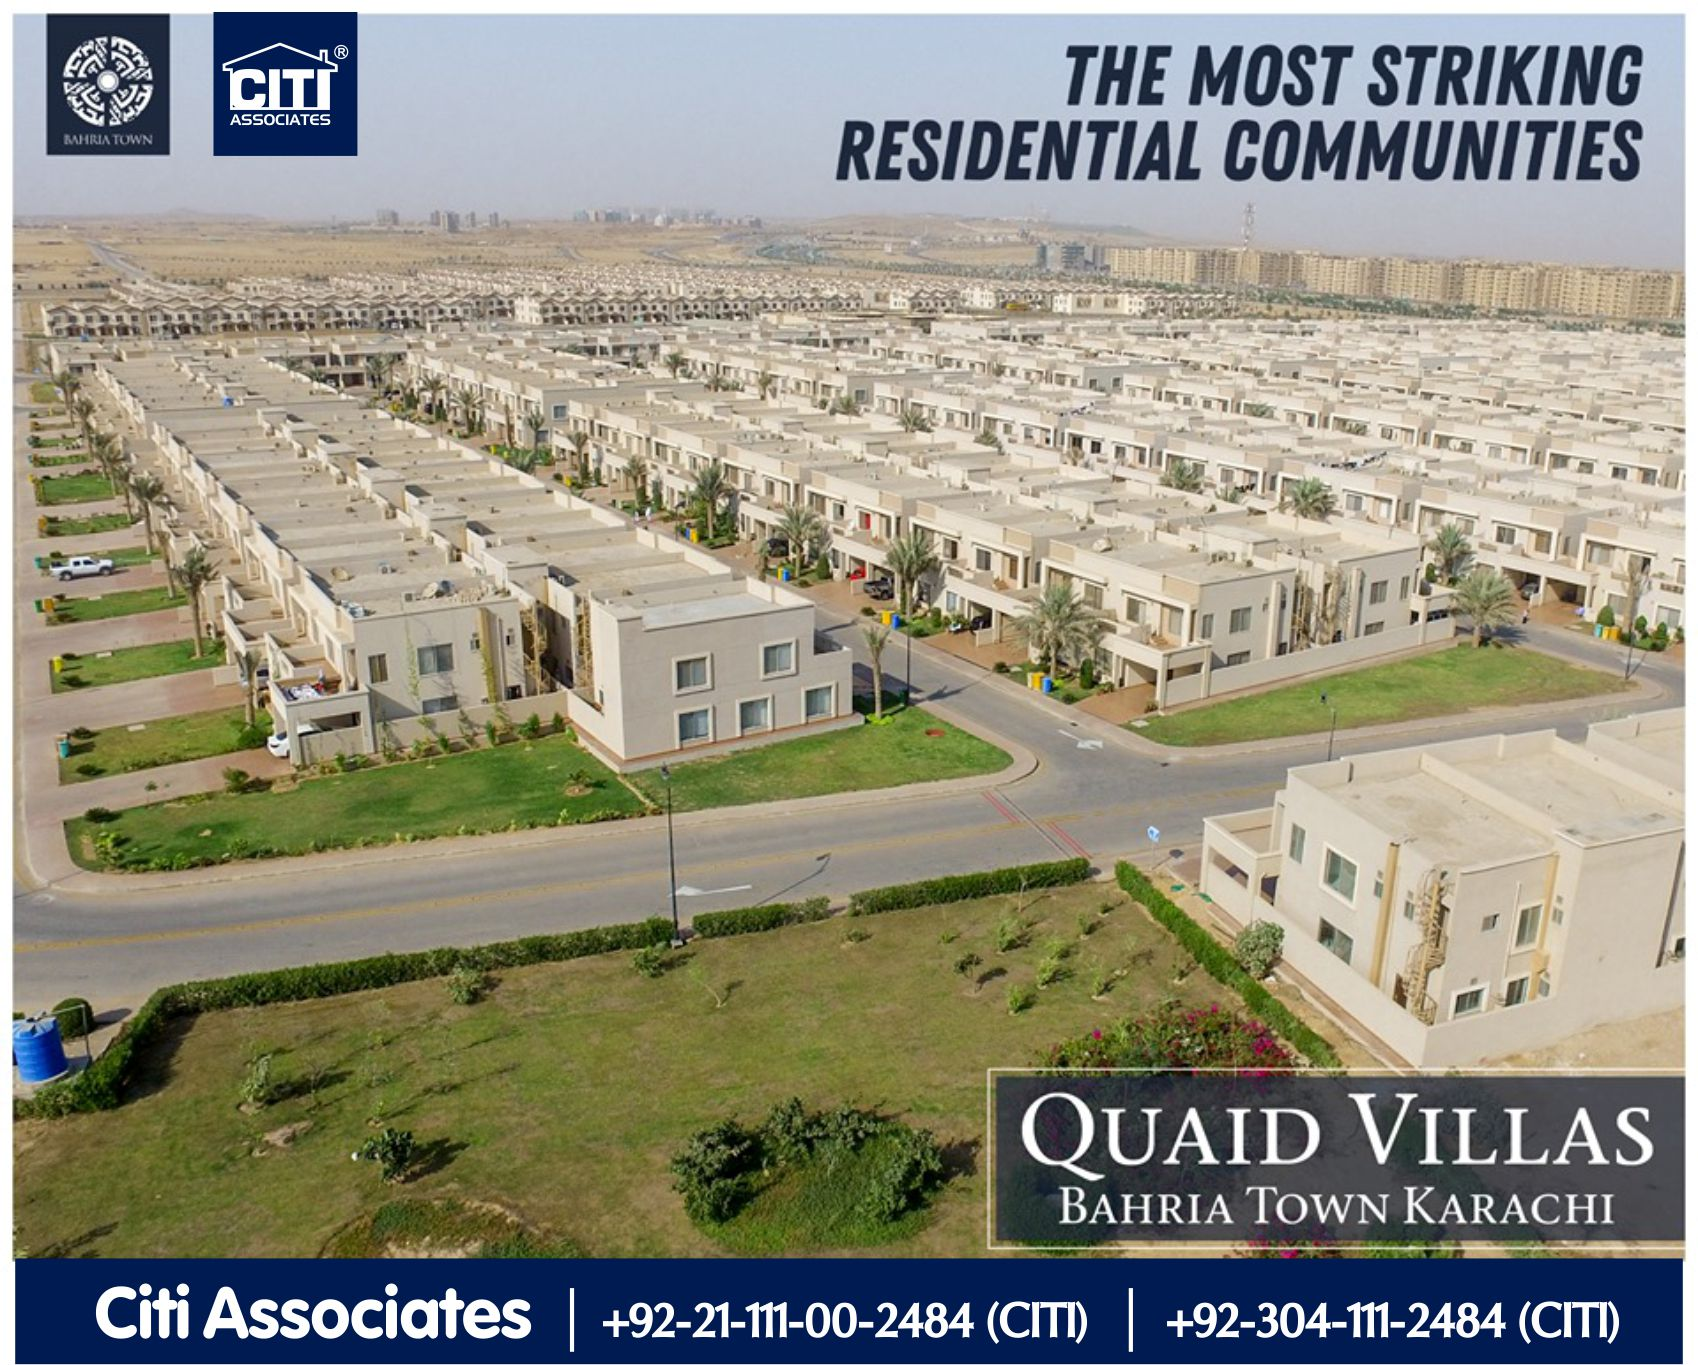 The Most Striking Residential Communities | Bahria Town Karachi